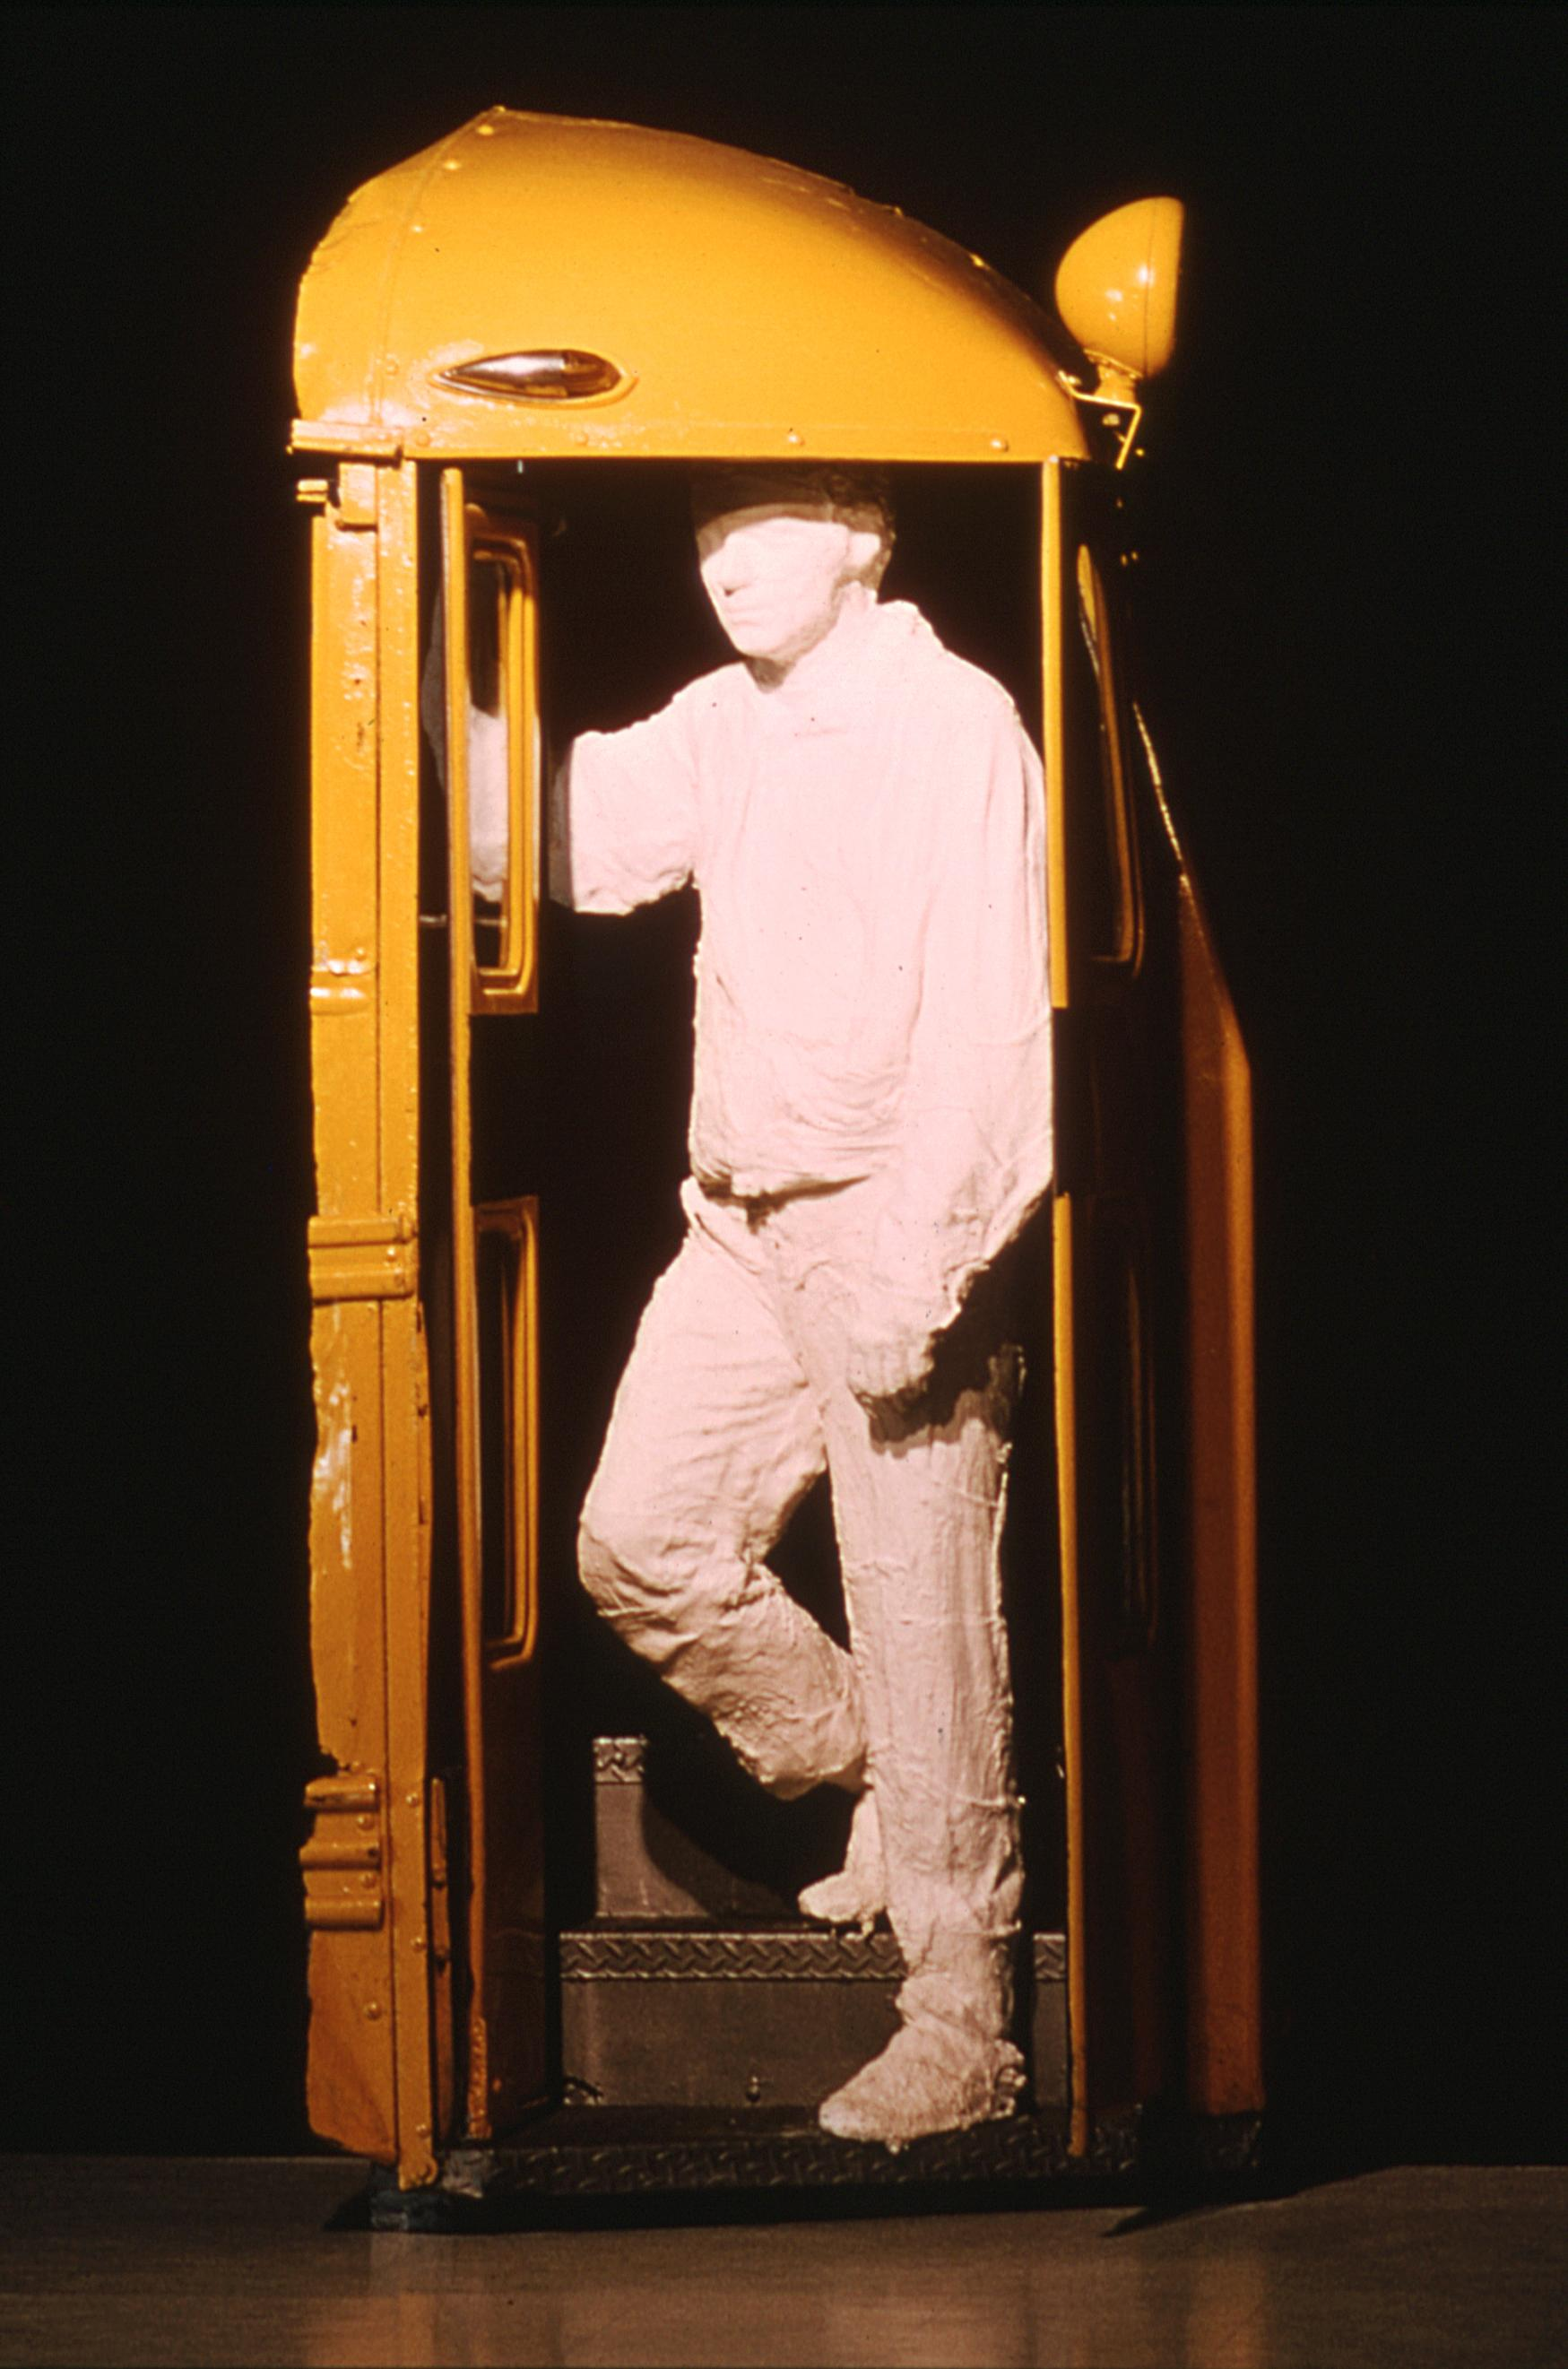 A life-size, white plaster cast of a man in work clothes appears to descend the front step of a yellow school bus.